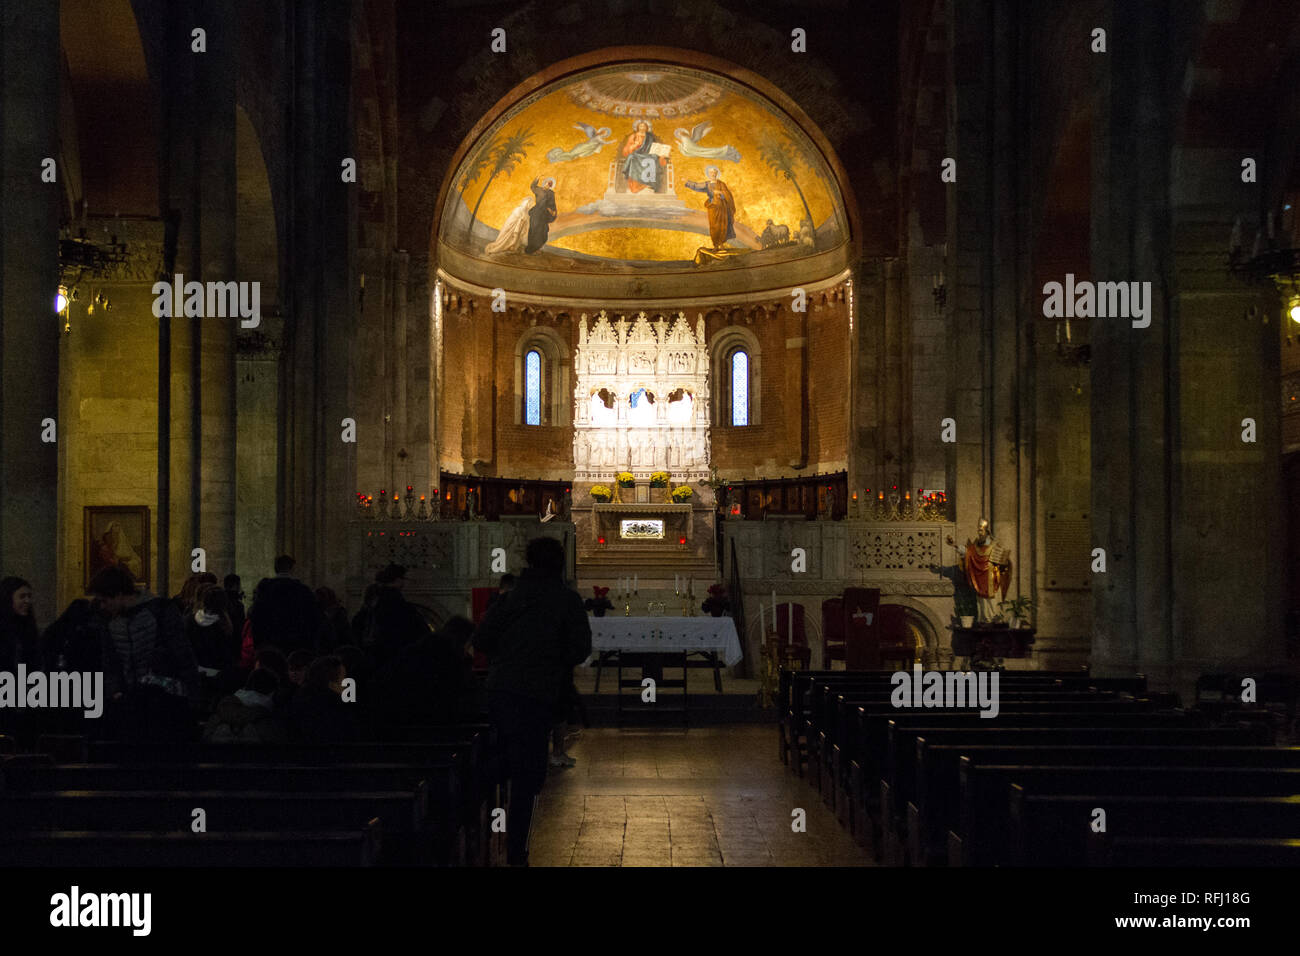 The remains of Saint Augustine of Hippo in a reliquary in the Basilica of San Pietro in Ciel d'Oro (Saint Peter in Heaven Clothed in Gold) in Pavia. Stock Photo